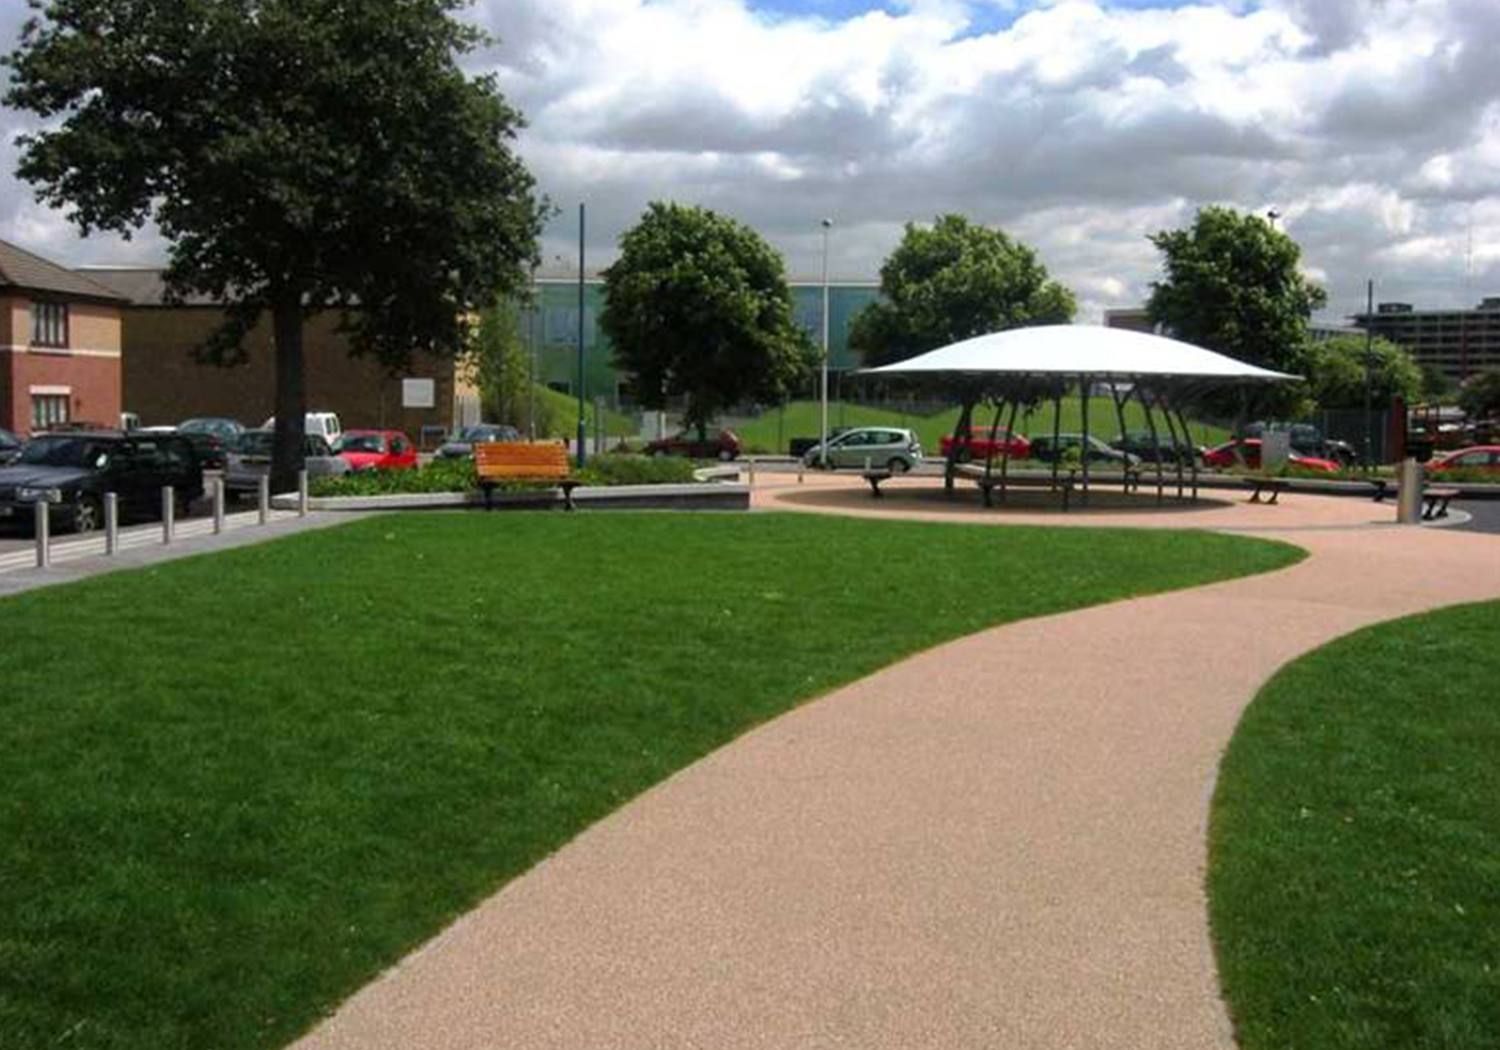 Projects-ParksPublicRealm-FerrantiPark-Canopy-1500x1050